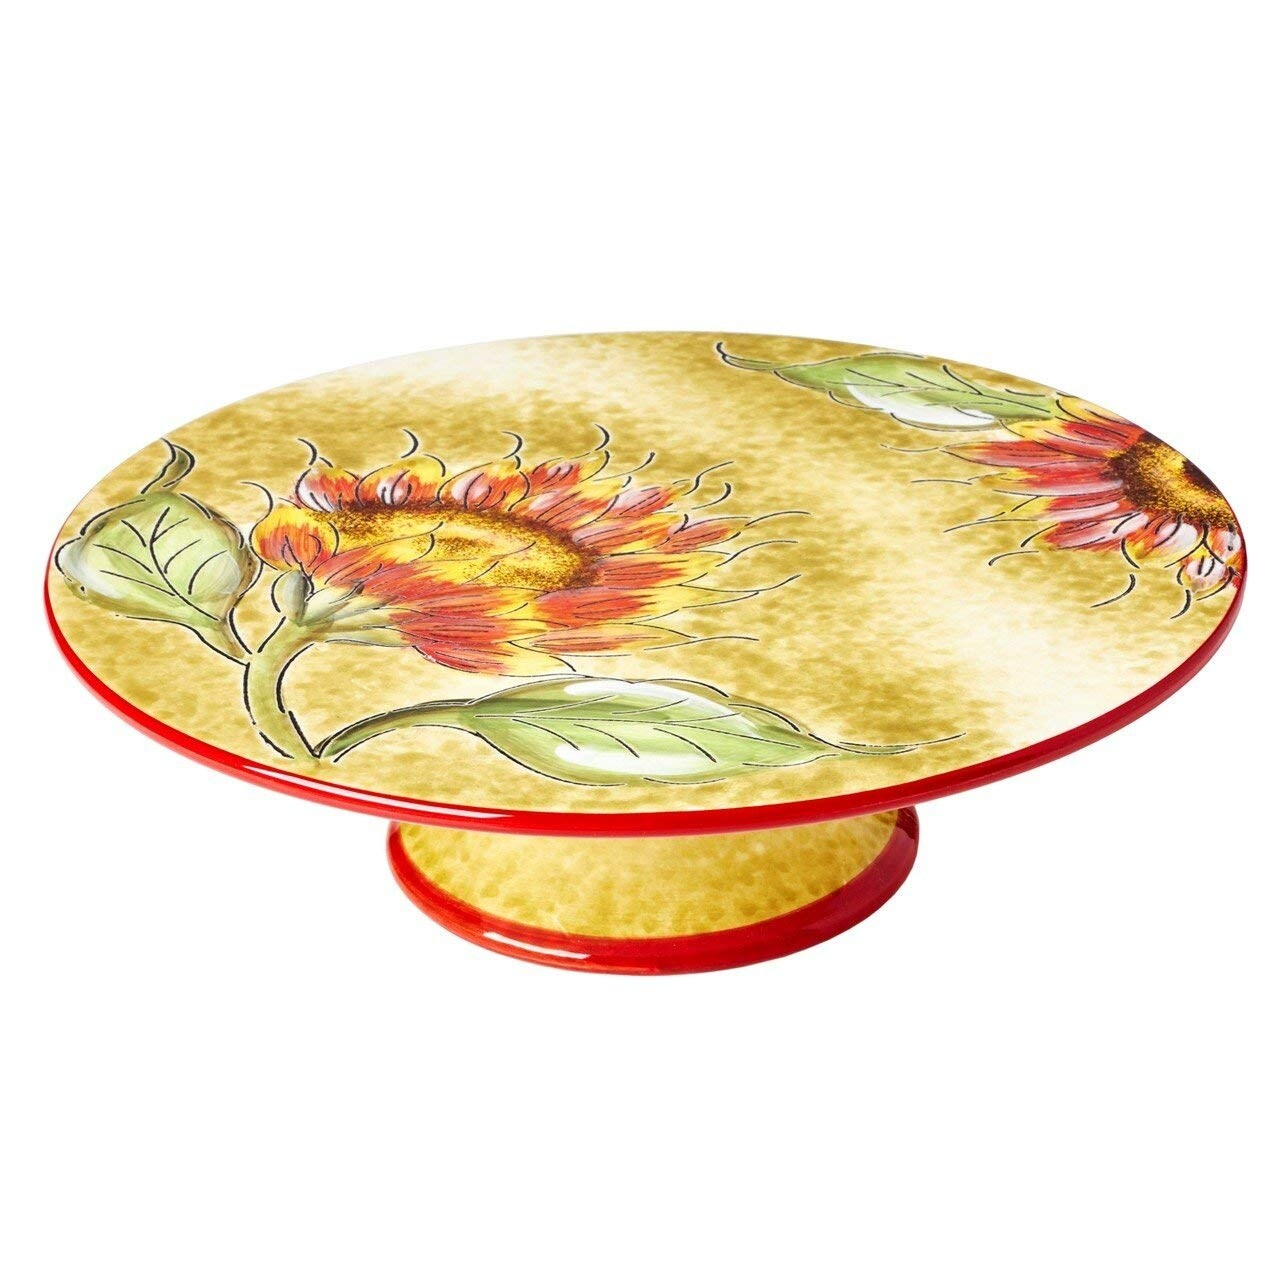 Buy Cake Plates Serving Platters & Trays Online at Overstock | Our ...